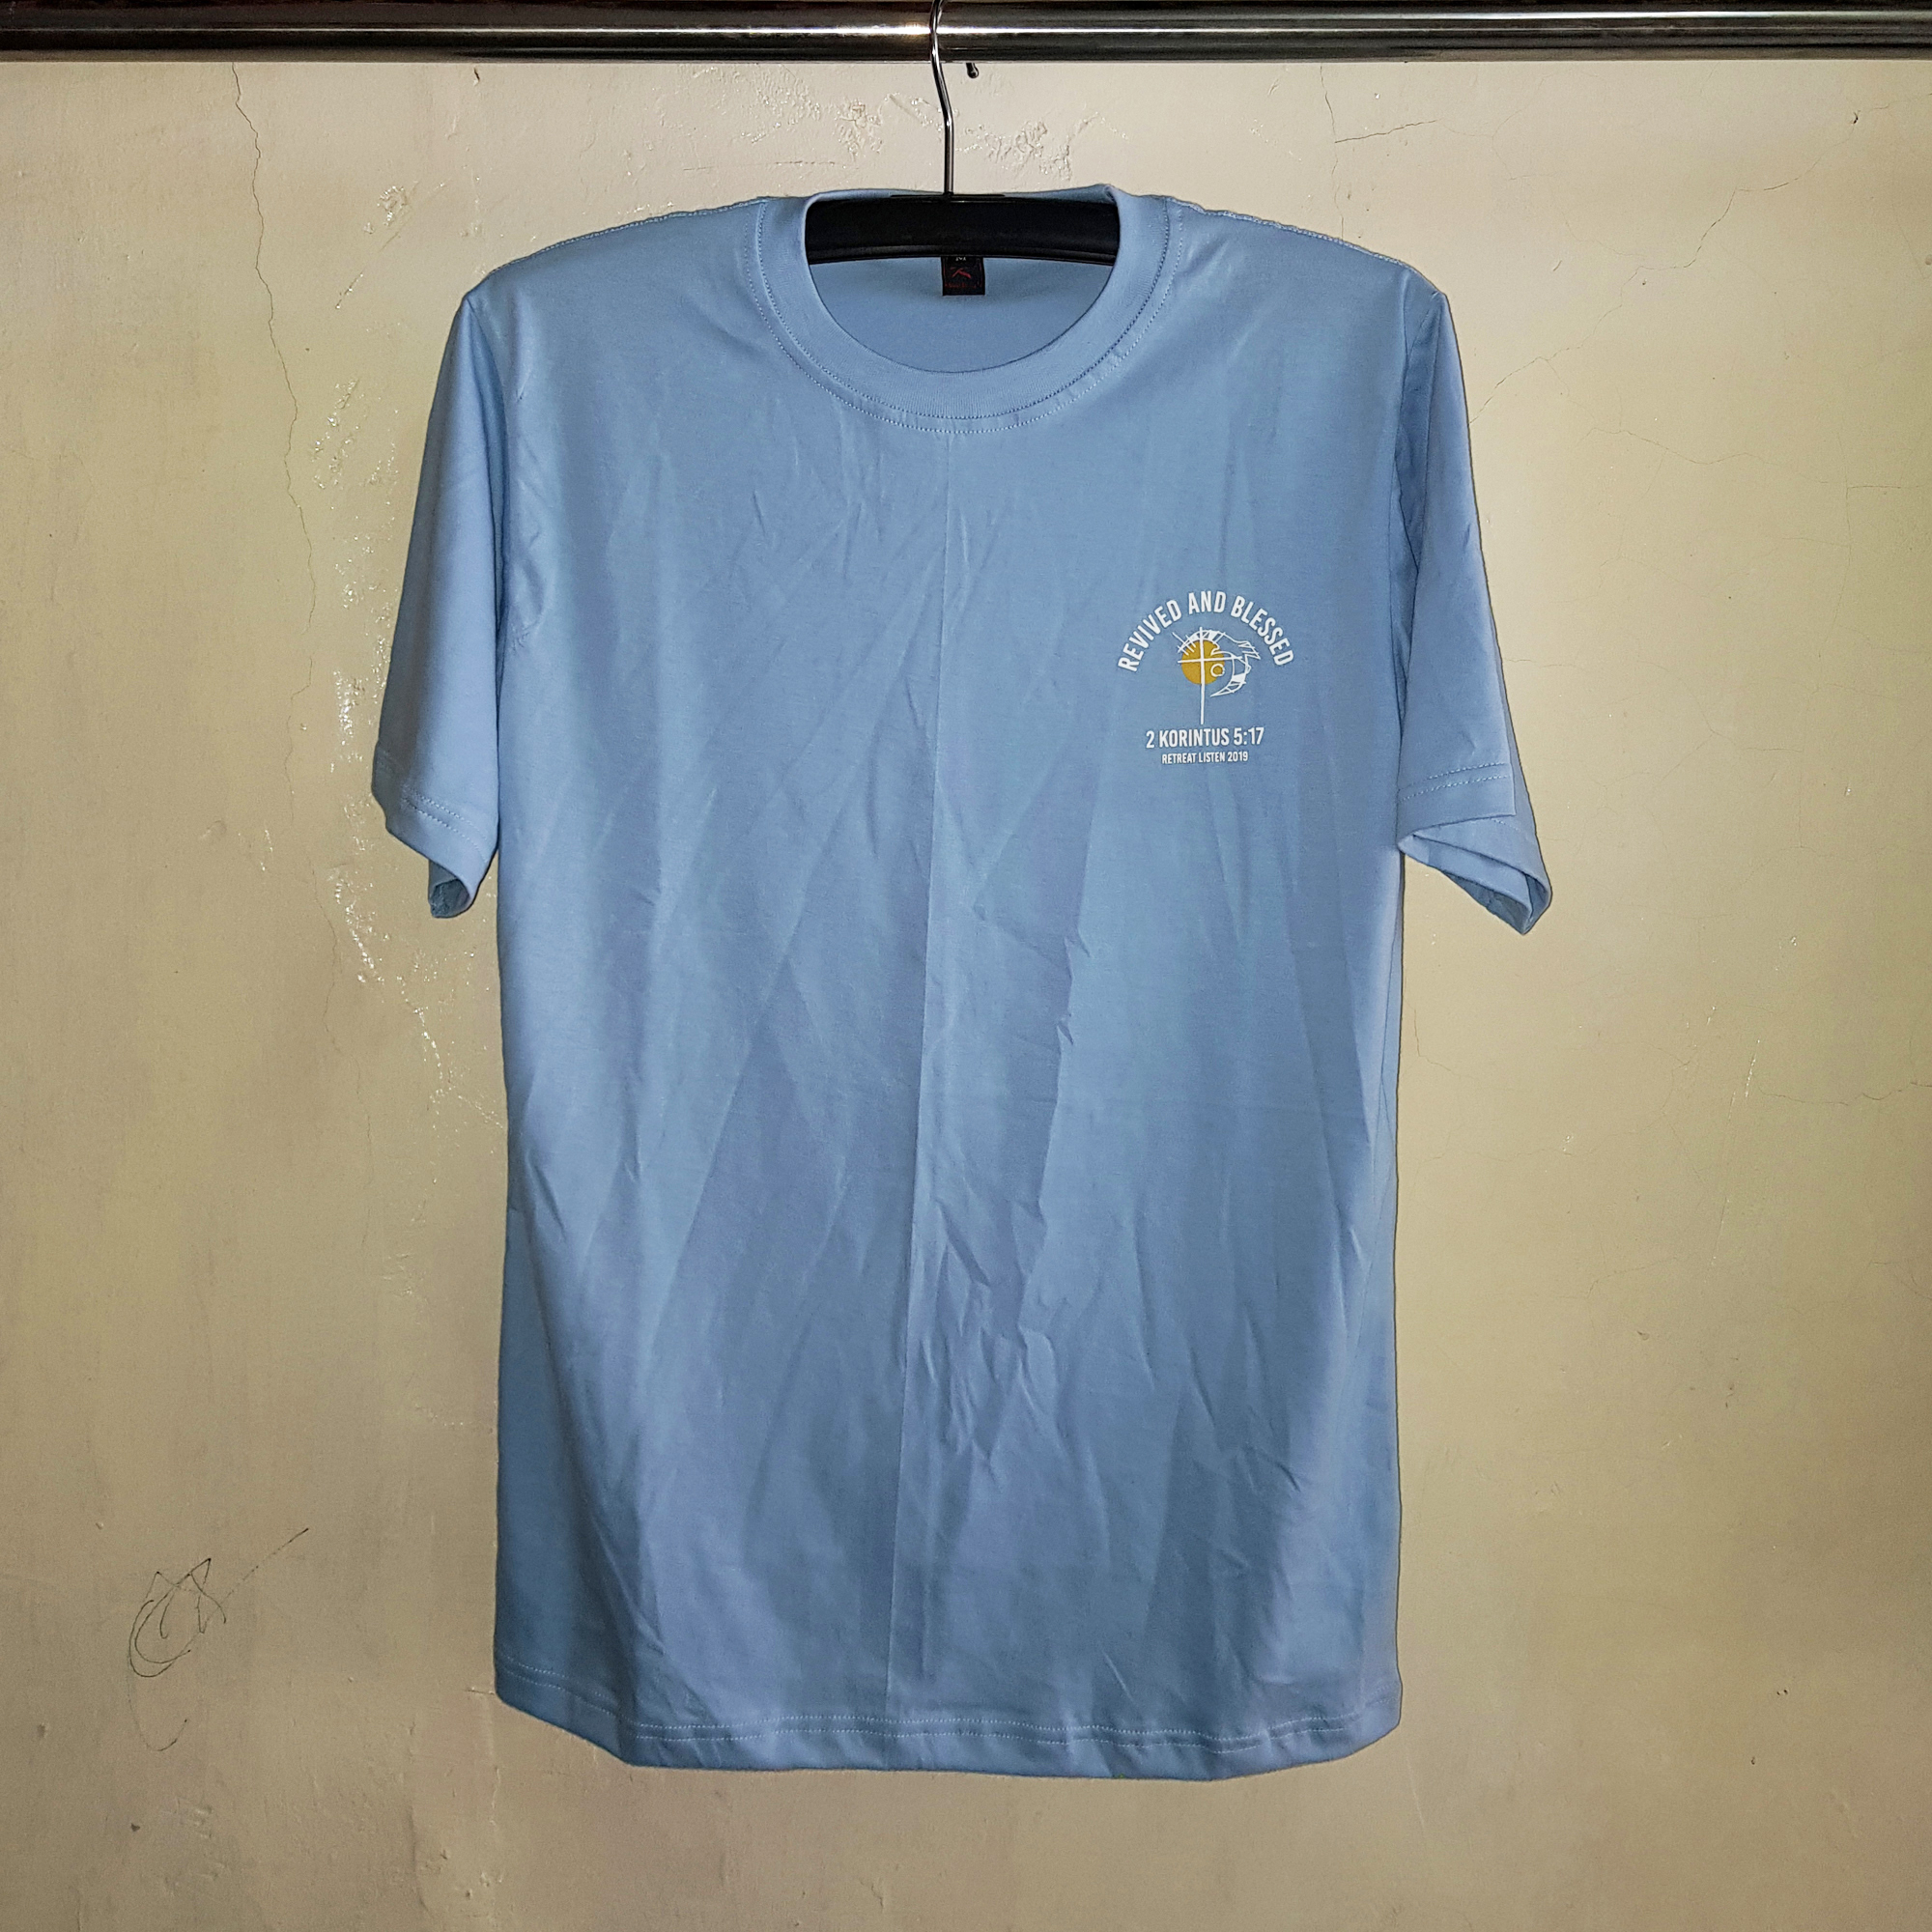 Kaos Cotton Baby Blue, Seragam Kaos Oblong